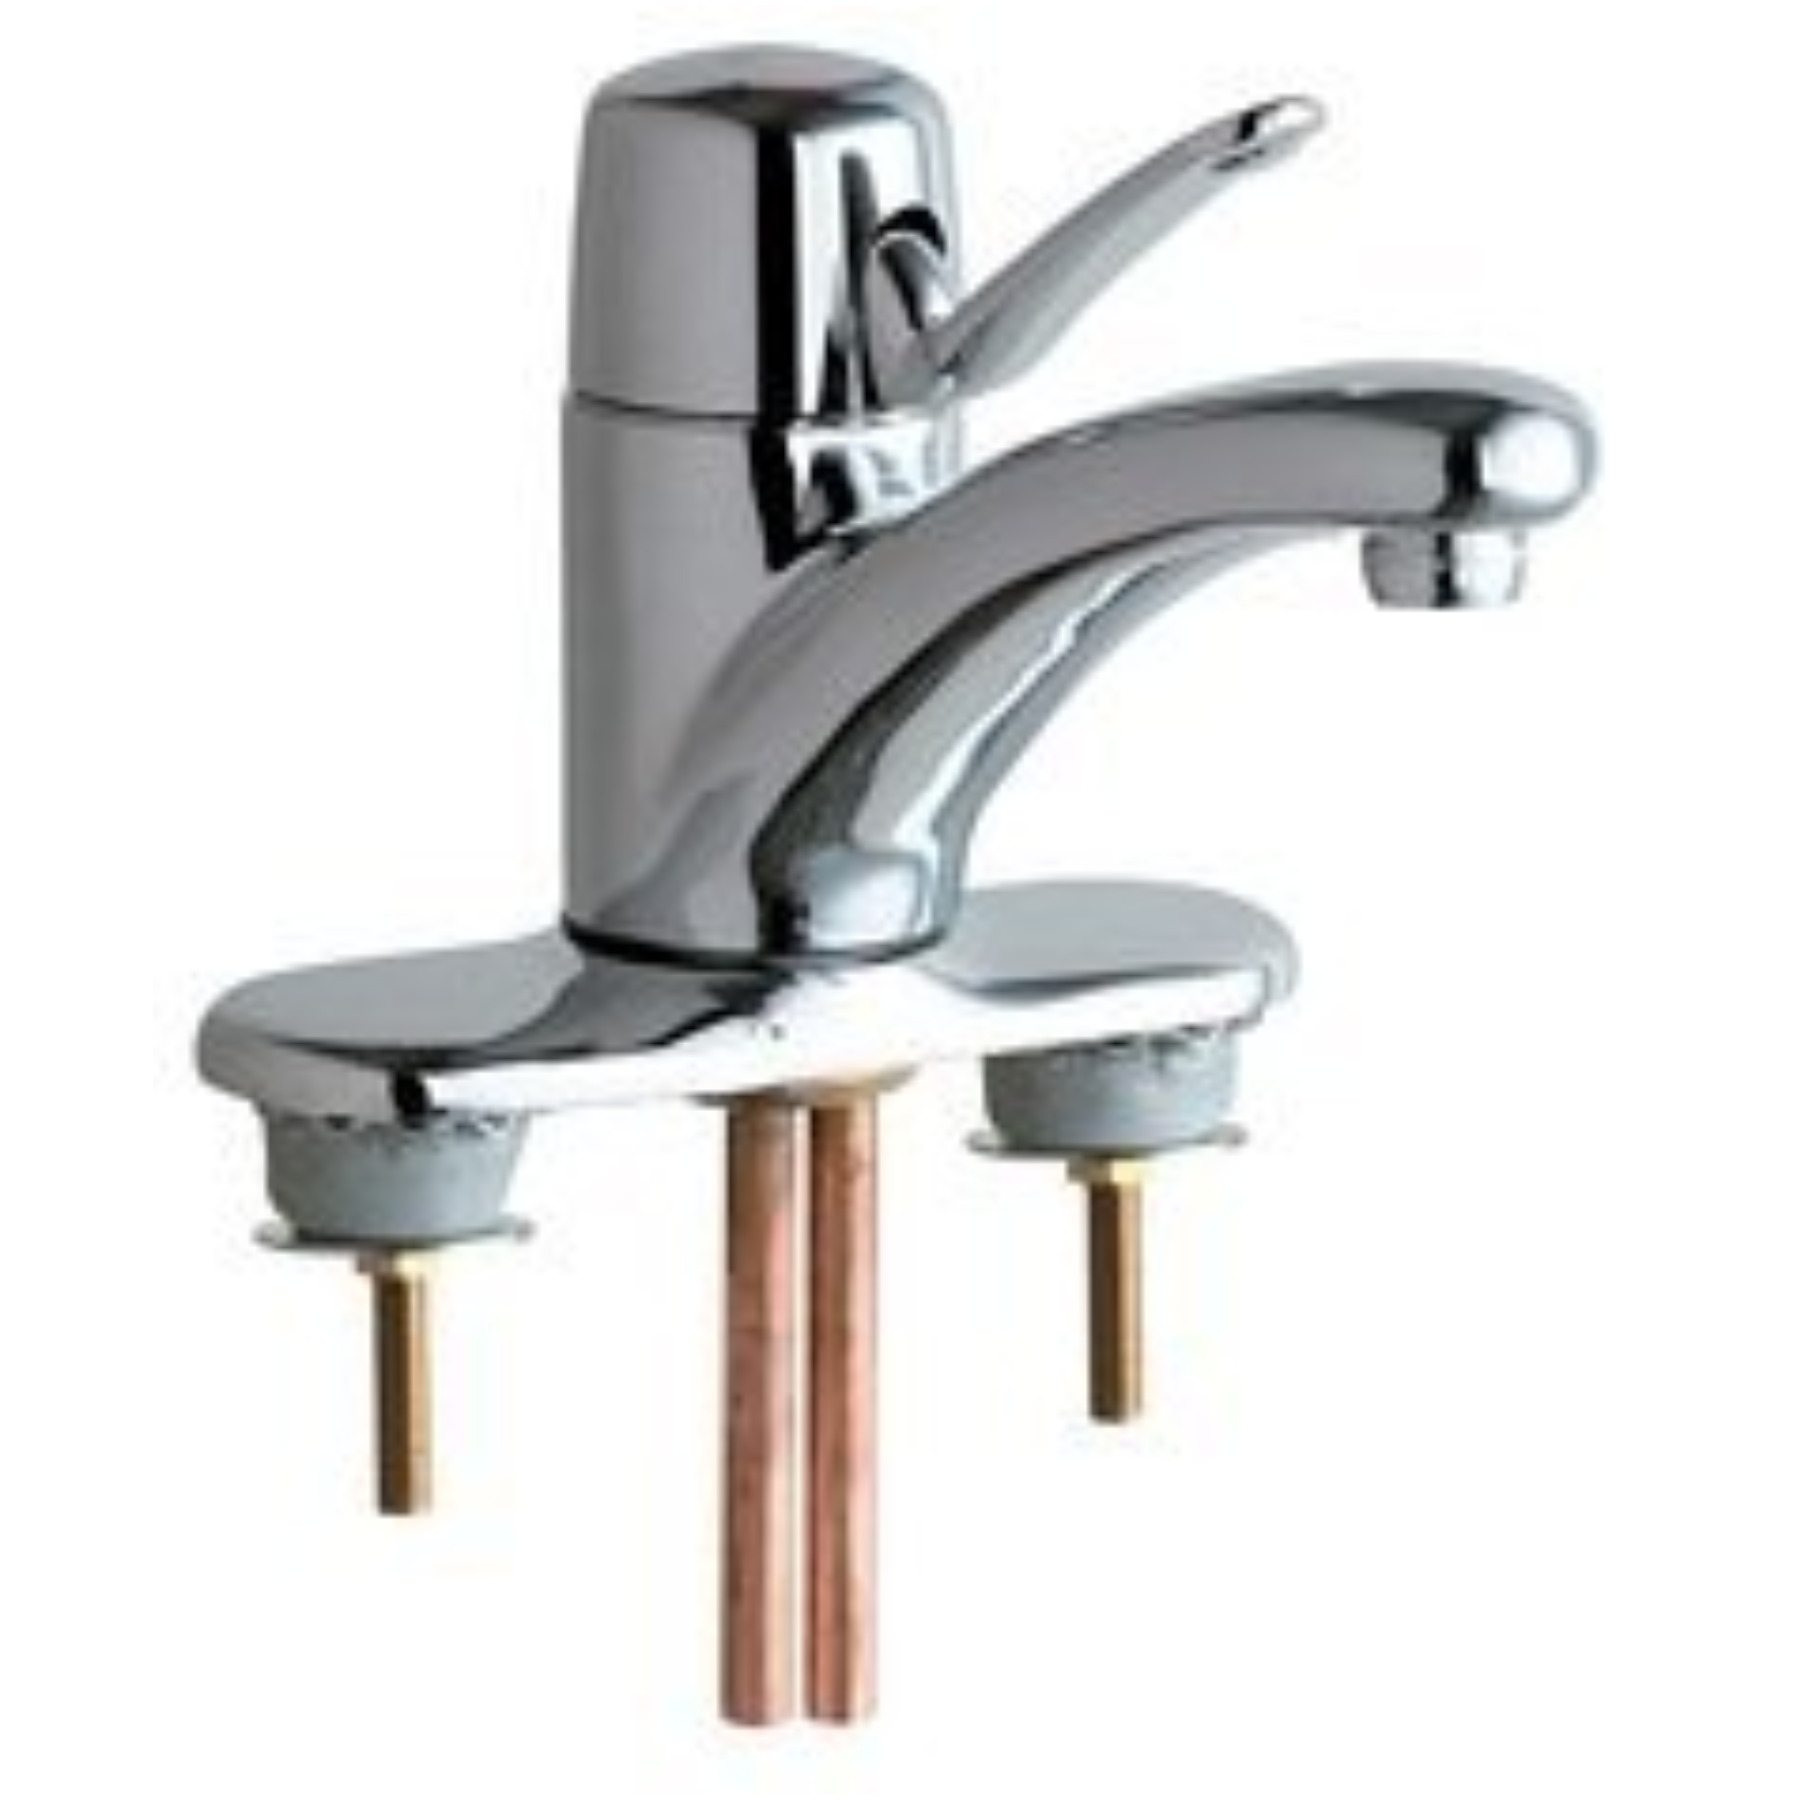 "CHICAGO FAUCETS SINGLE LEVER BATHROOM SINK MIXING FAUCET WITH 4"" CENTERS, CHROME, LEAD FREE"